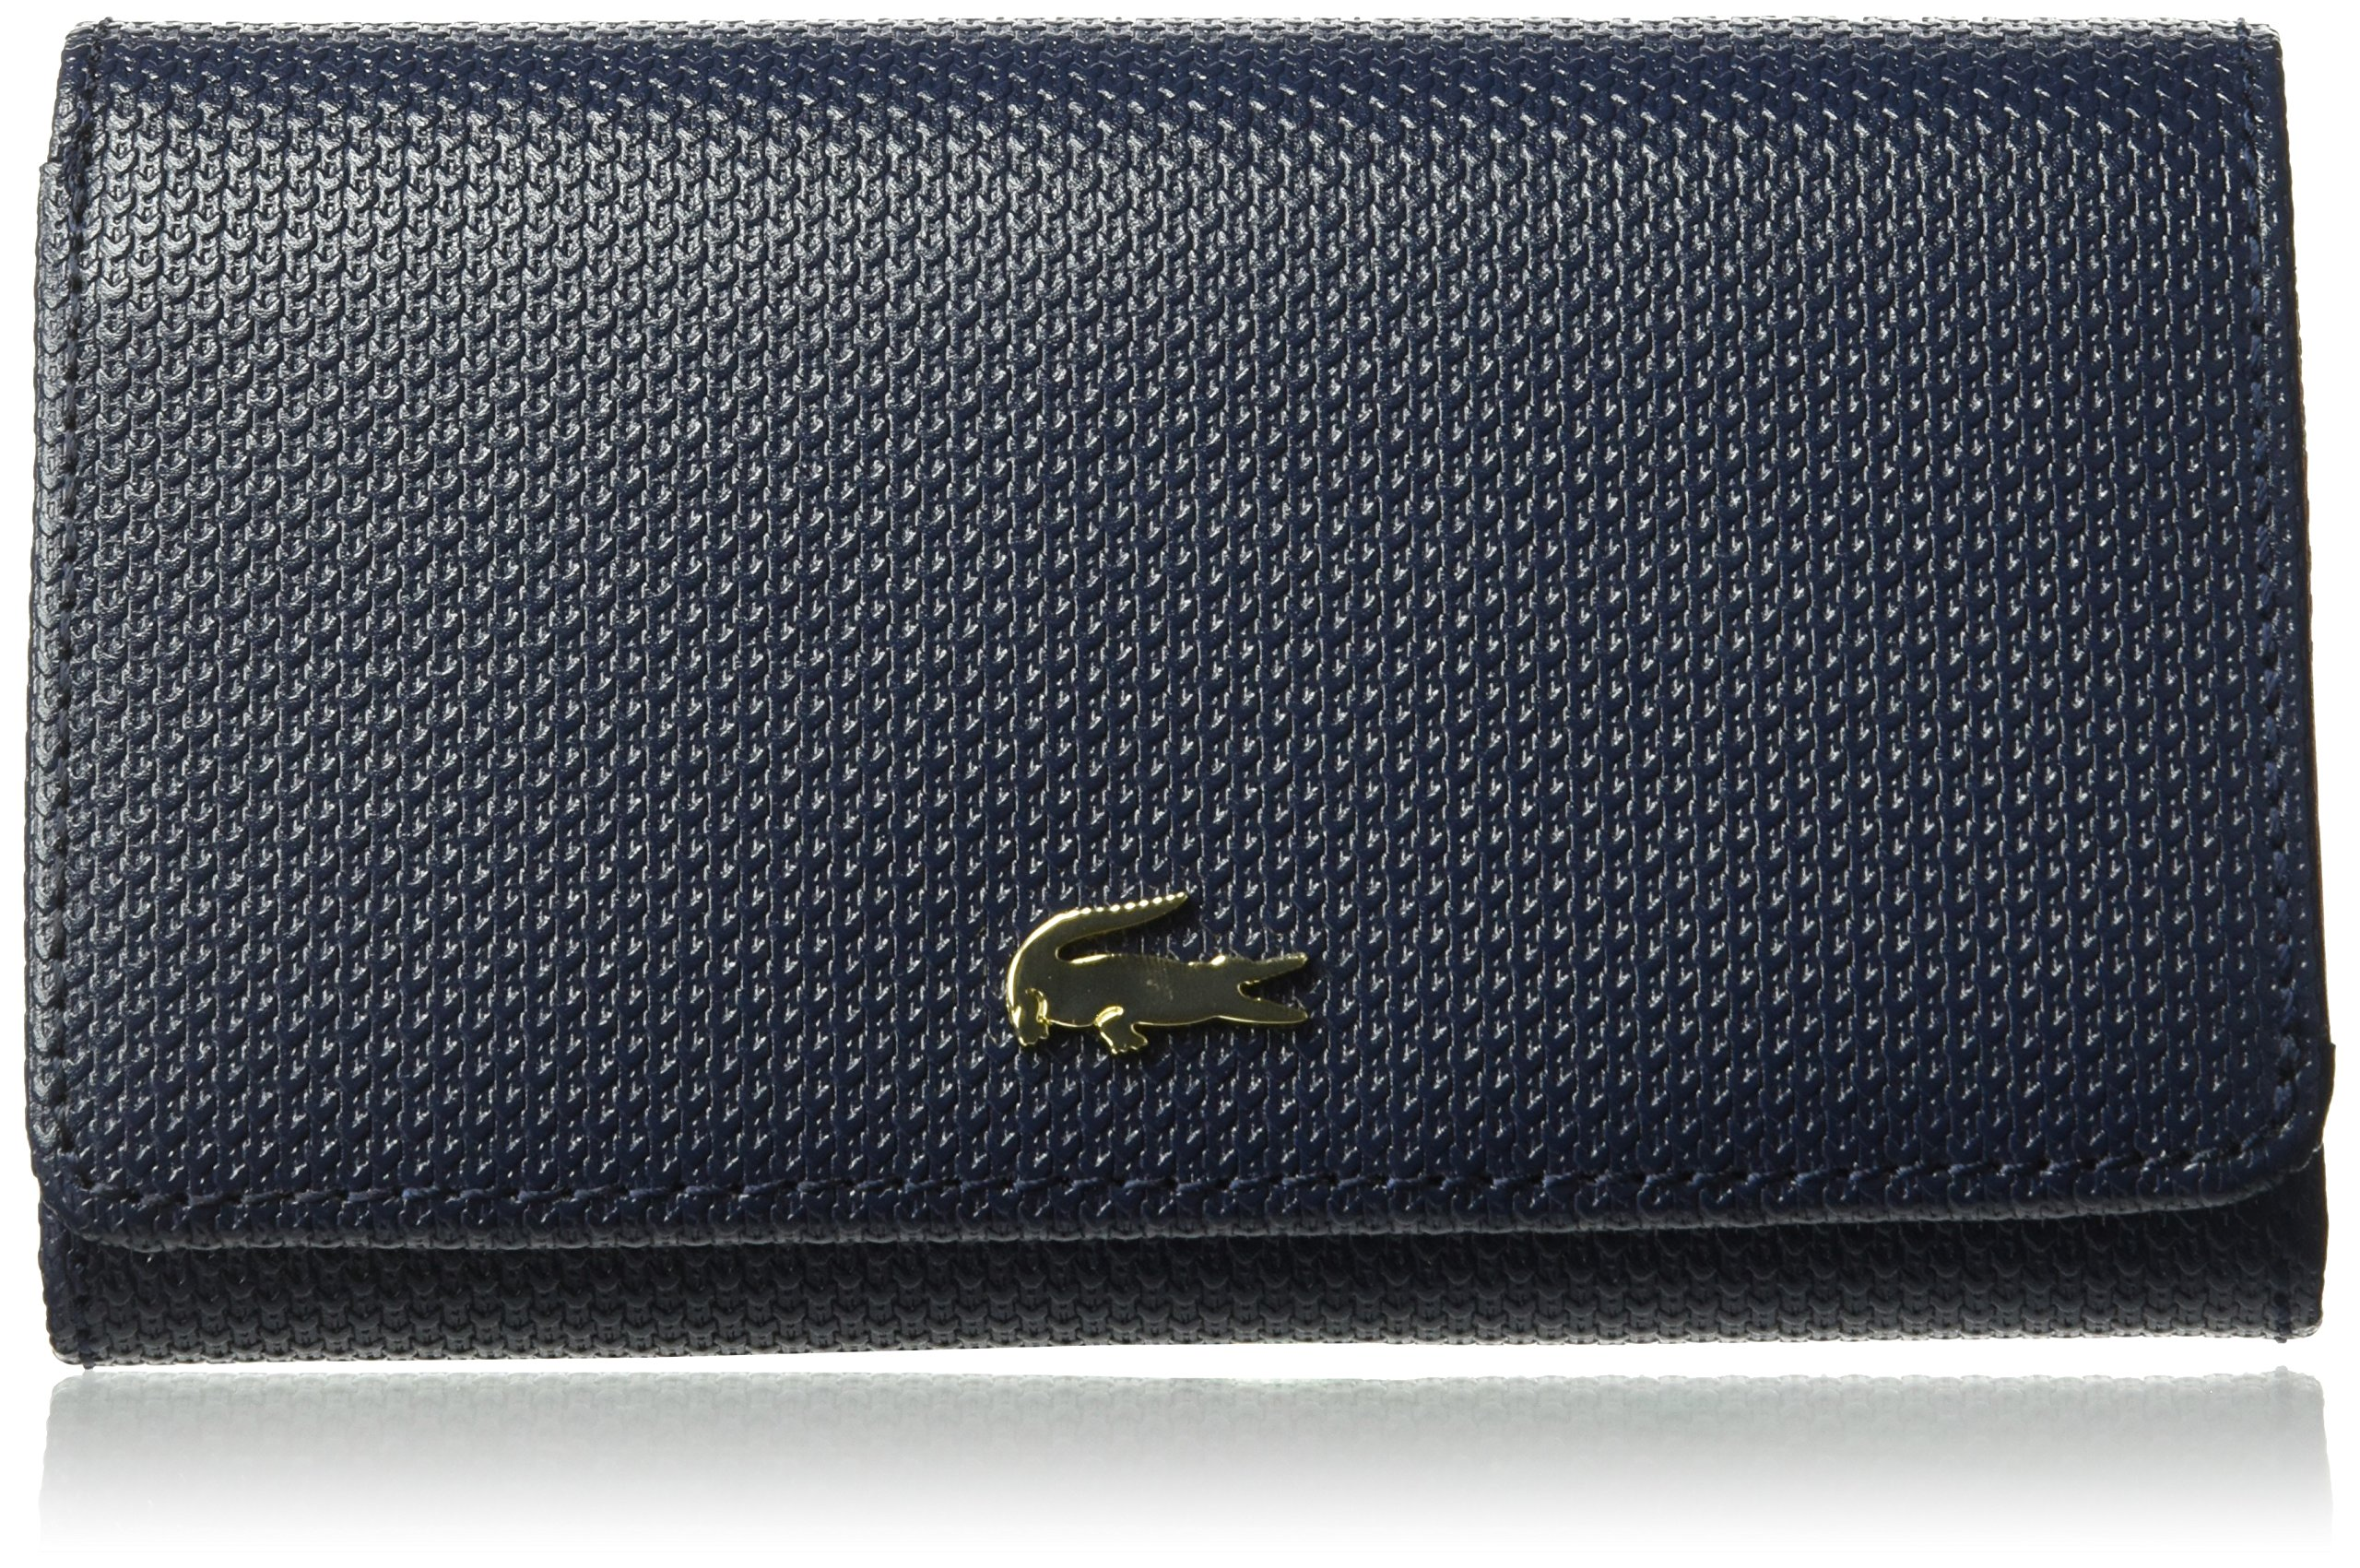 Lacoste Compact All in One, Nf2251ce, Peacoat